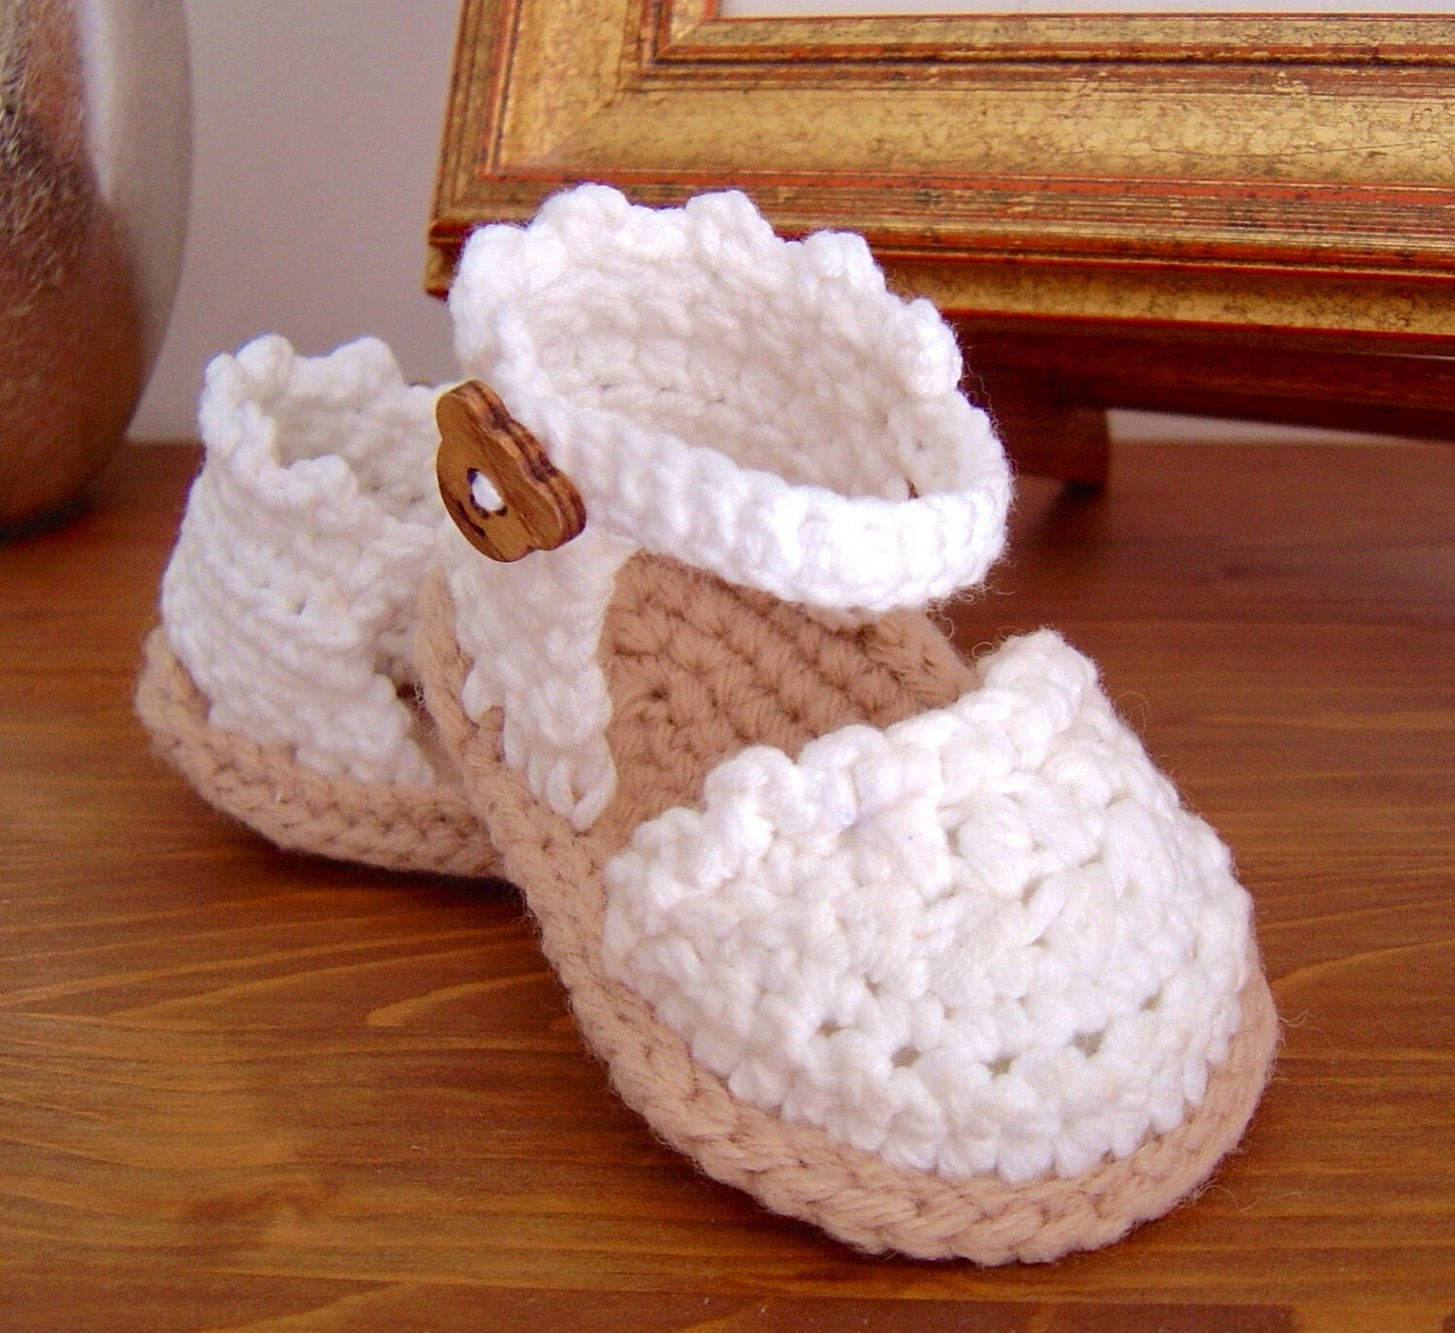 Crochet Baby Shoes Elegant Baby Crochet Sandals Several Pieces Of Ideas You Can Try Of Delightful 42 Models Crochet Baby Shoes